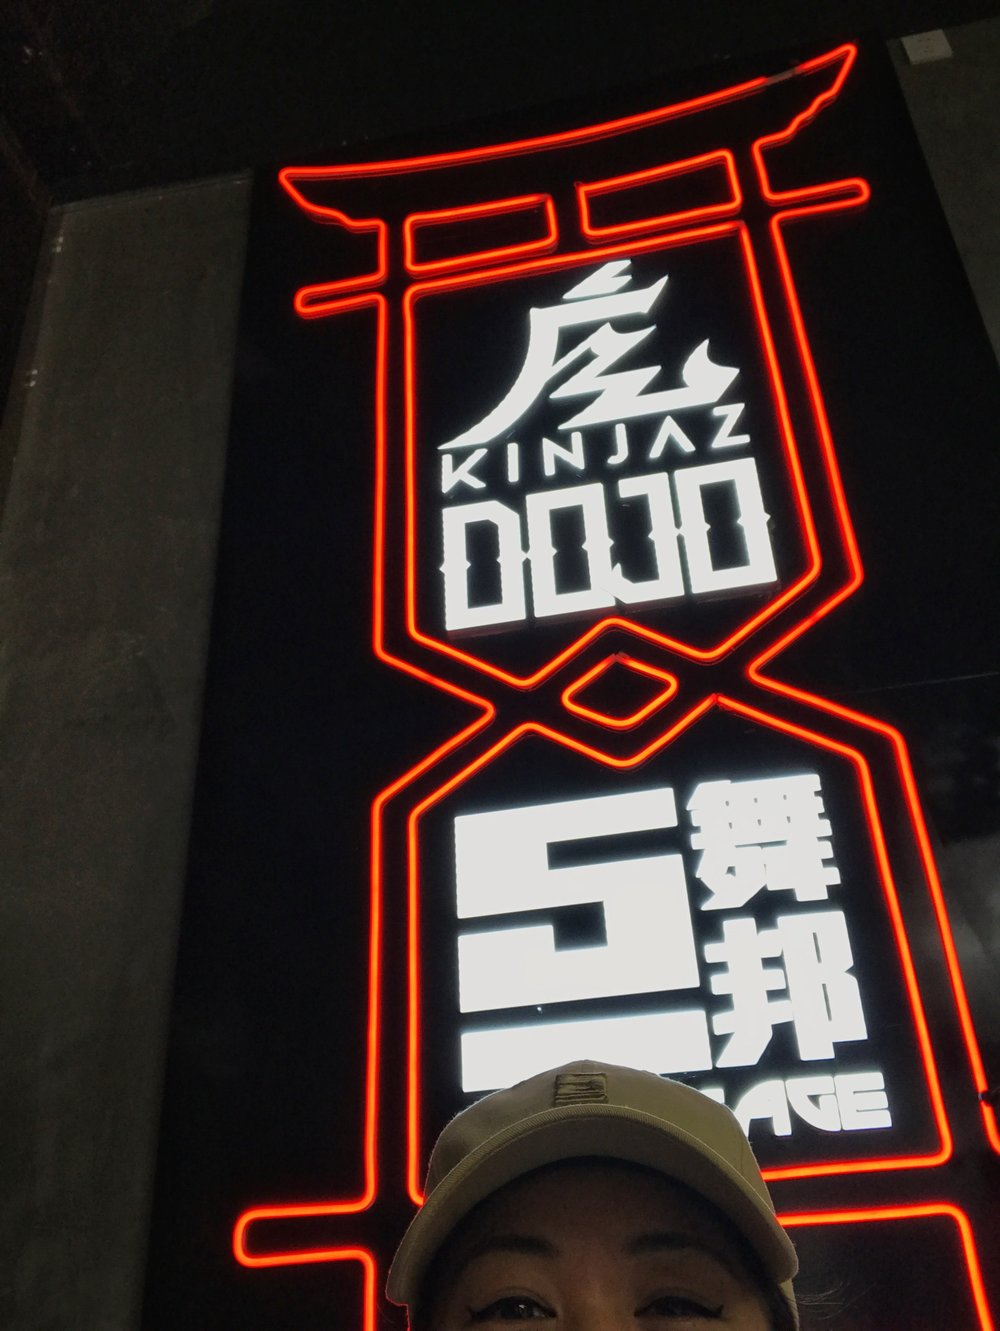 Day 1 at Kinjaz Dojo China x Sinostage - The energy here is just so refreshing. Pleasantly surprised with the entire experience and it's only day 1! Amazing people, food, dancers! Can't wait for tomorrow.